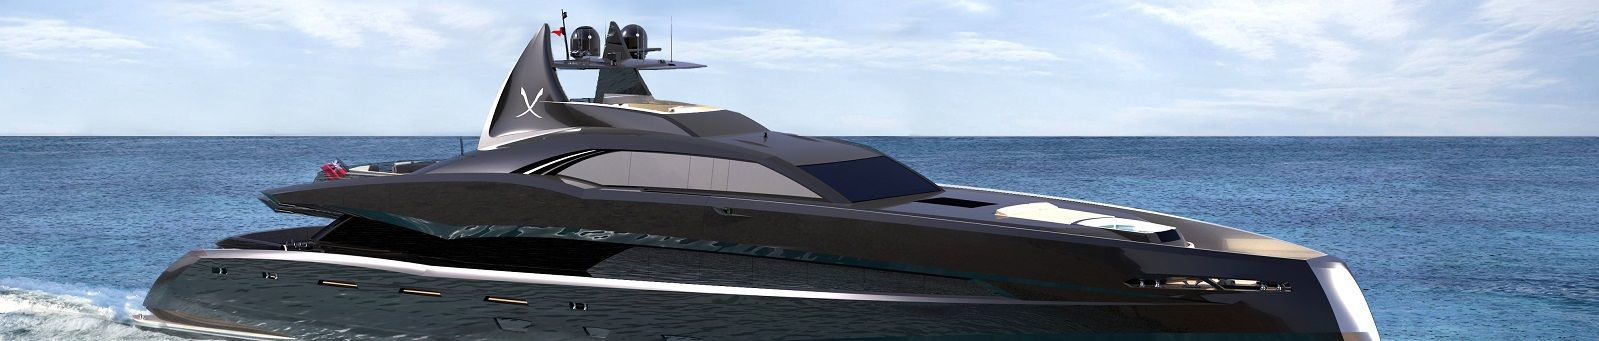 H&H to deliver HVAC for new 46 m. ICON Yacht